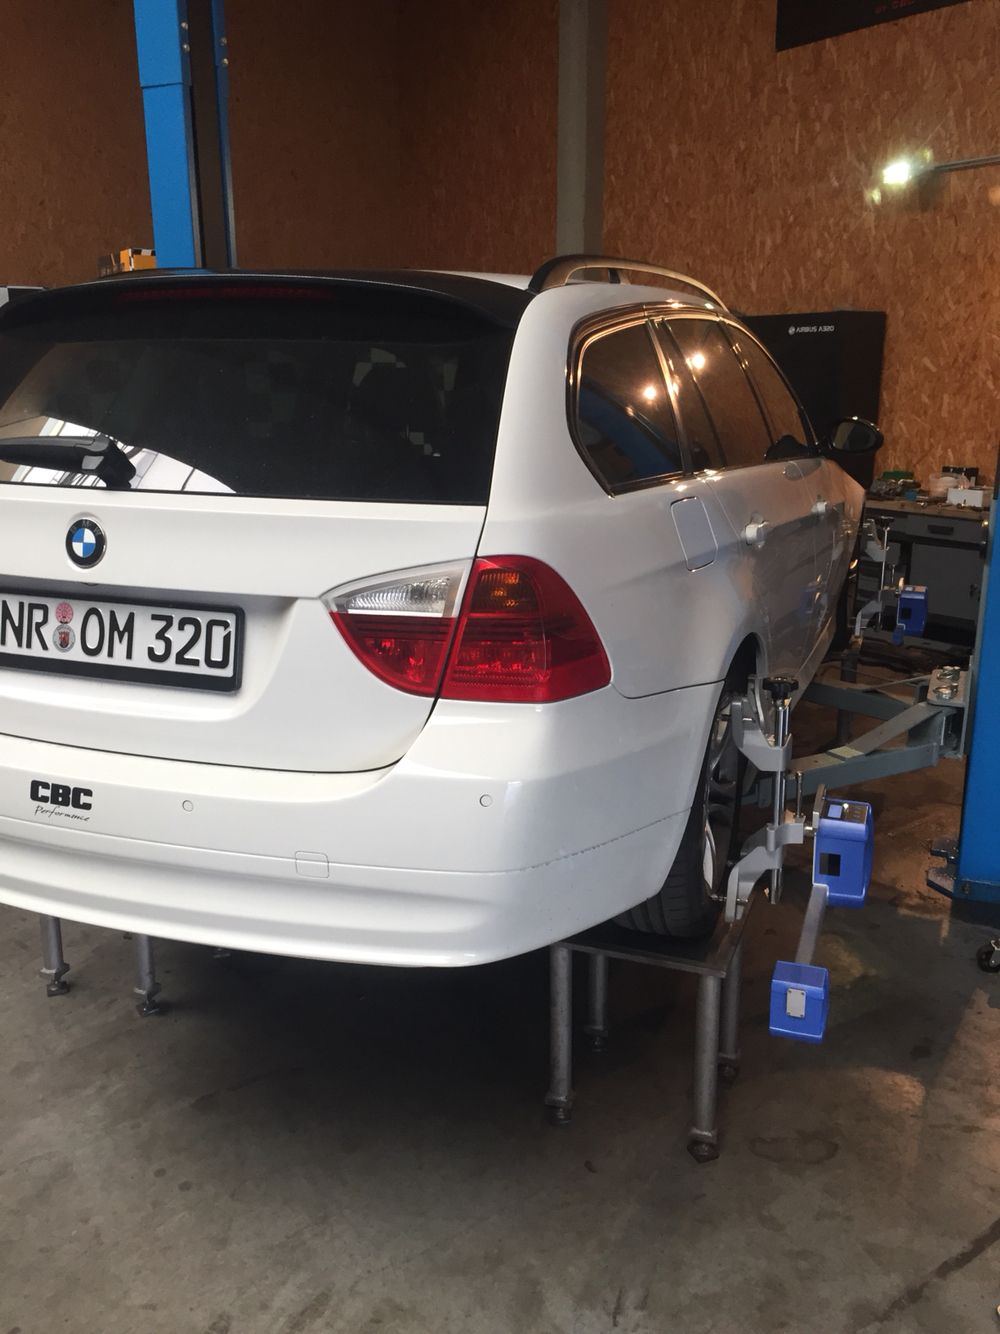 New Suspension in Daily BMW 320d. ST Suspensions. Ockenfels Perfomance